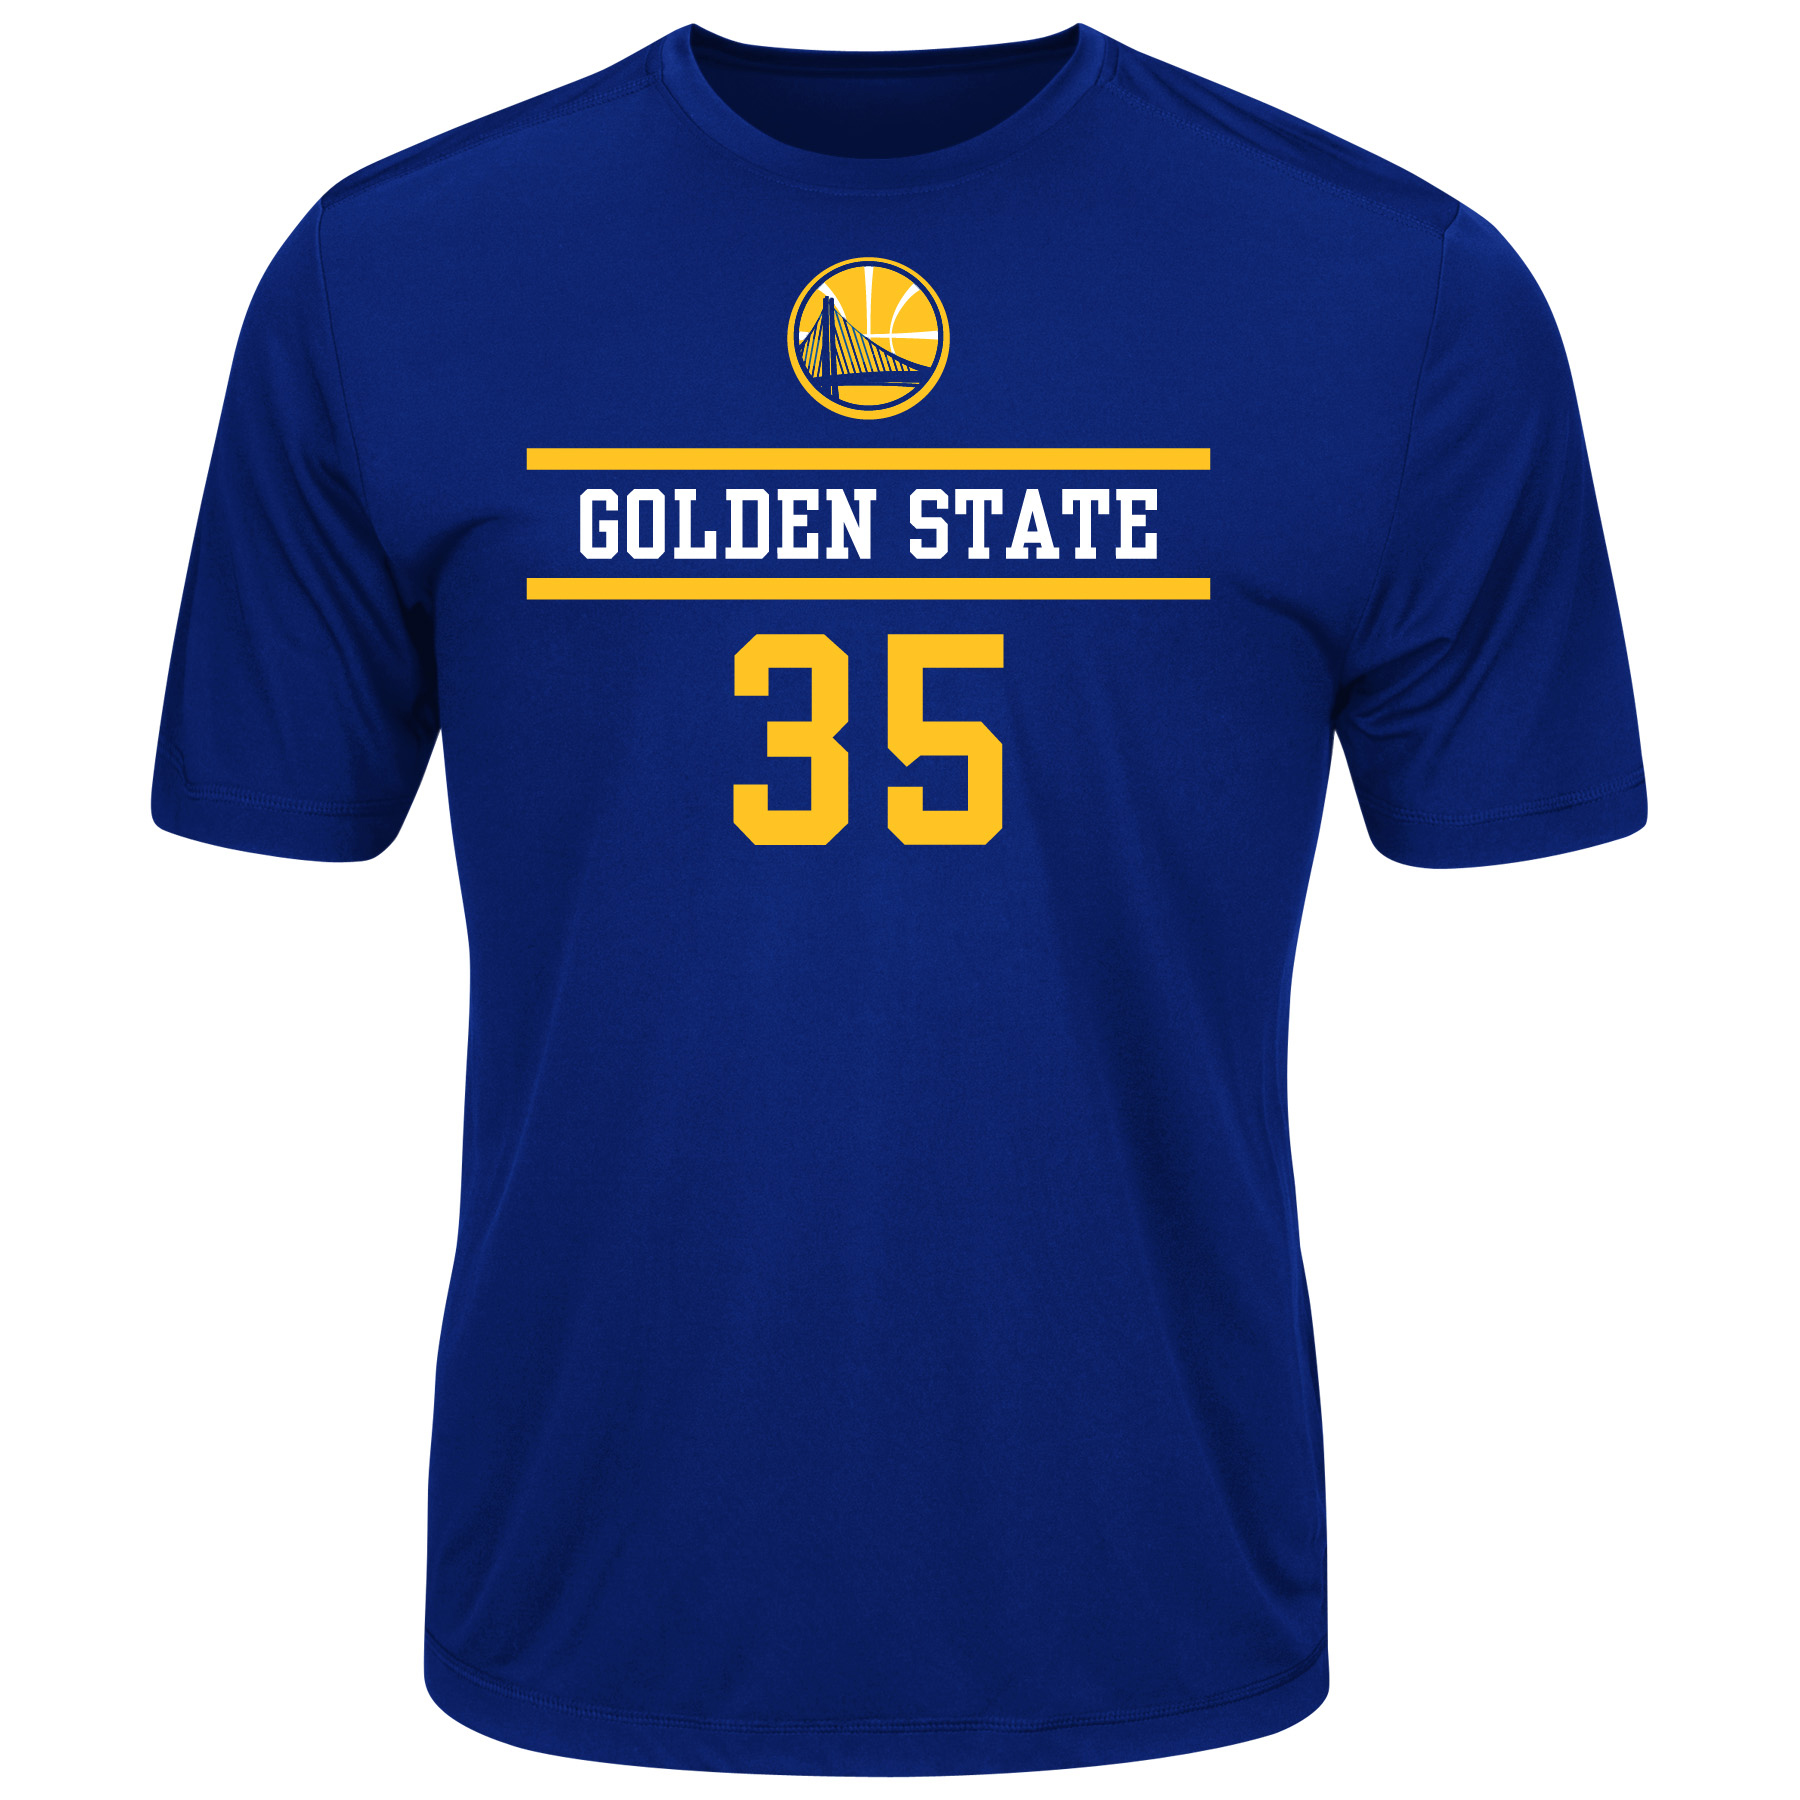 NBA Golden State Warriors Total Dedication Men's Tee - Kevin Durant #35